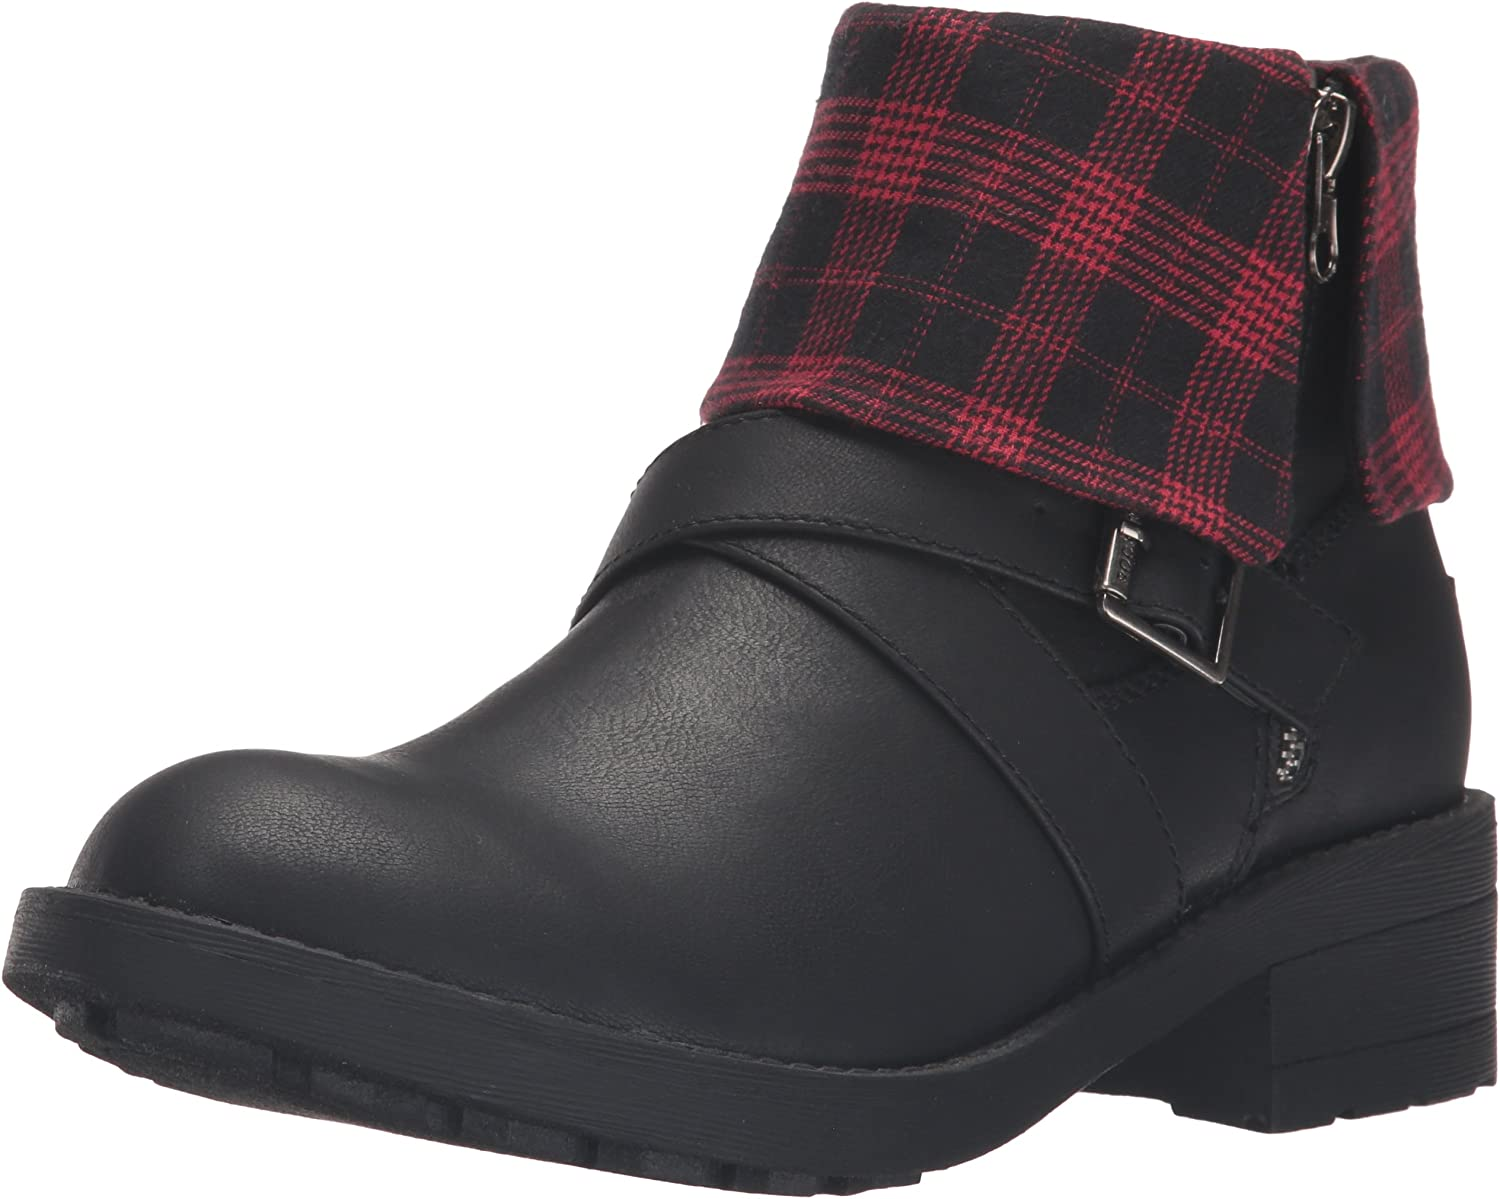 Rocket Dog Womens Tobie Lewis Pu - Altan Cotton Ankle Bootie